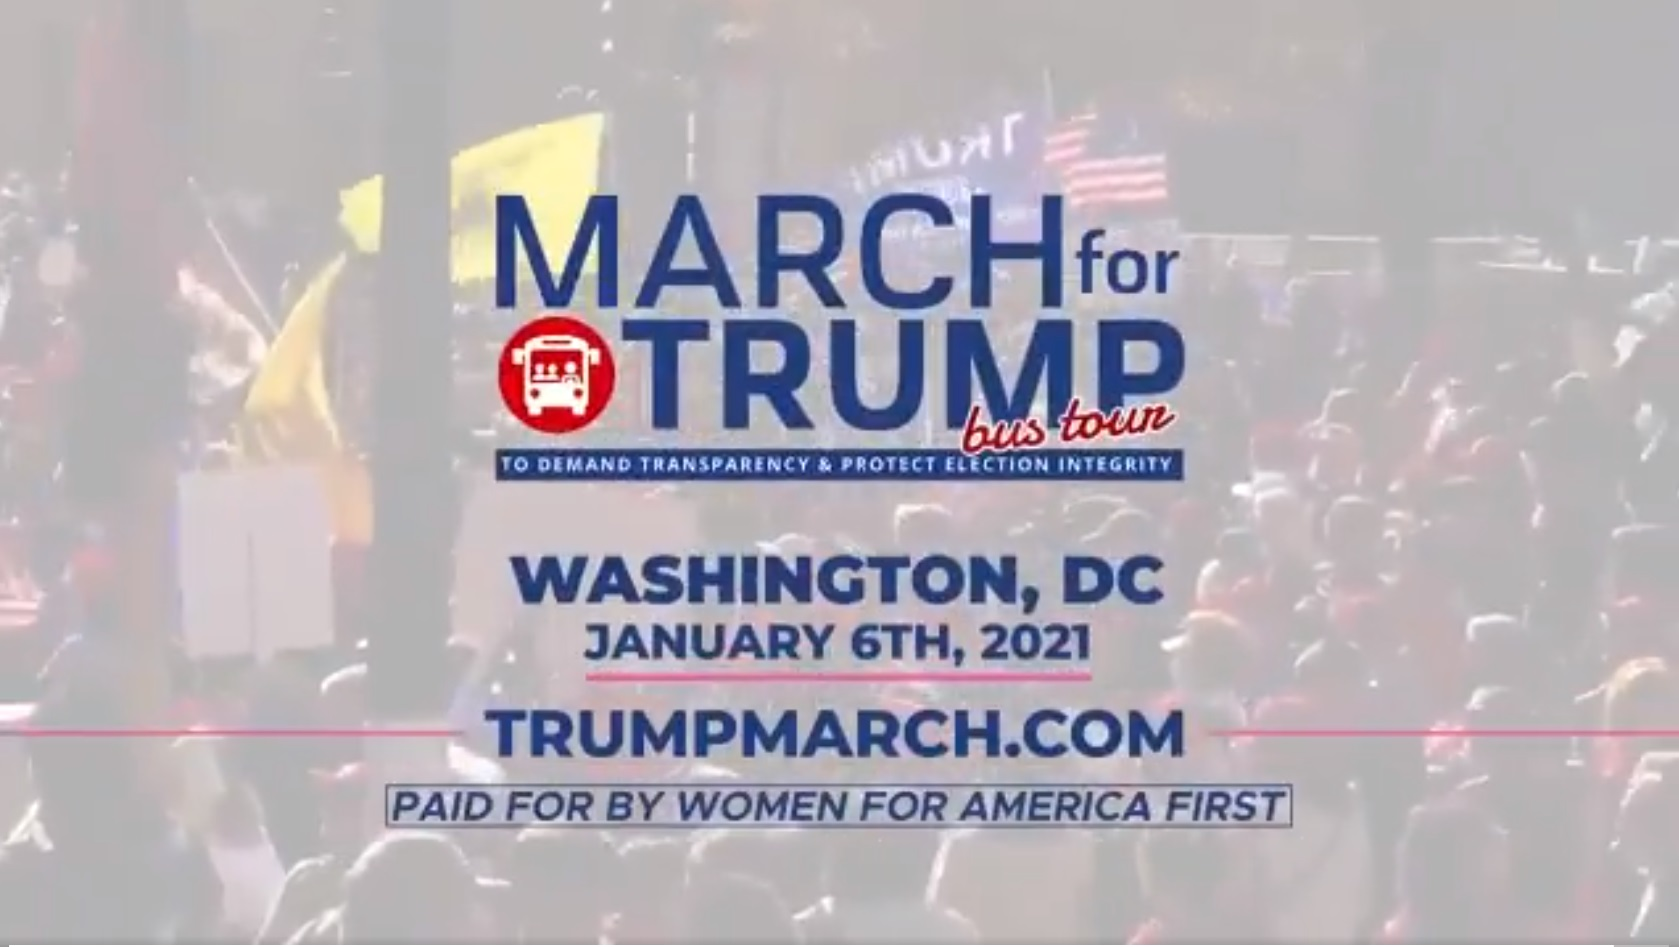 March for Trump - BE A PART OF HISTORY! January 6th - arrive by 9AM